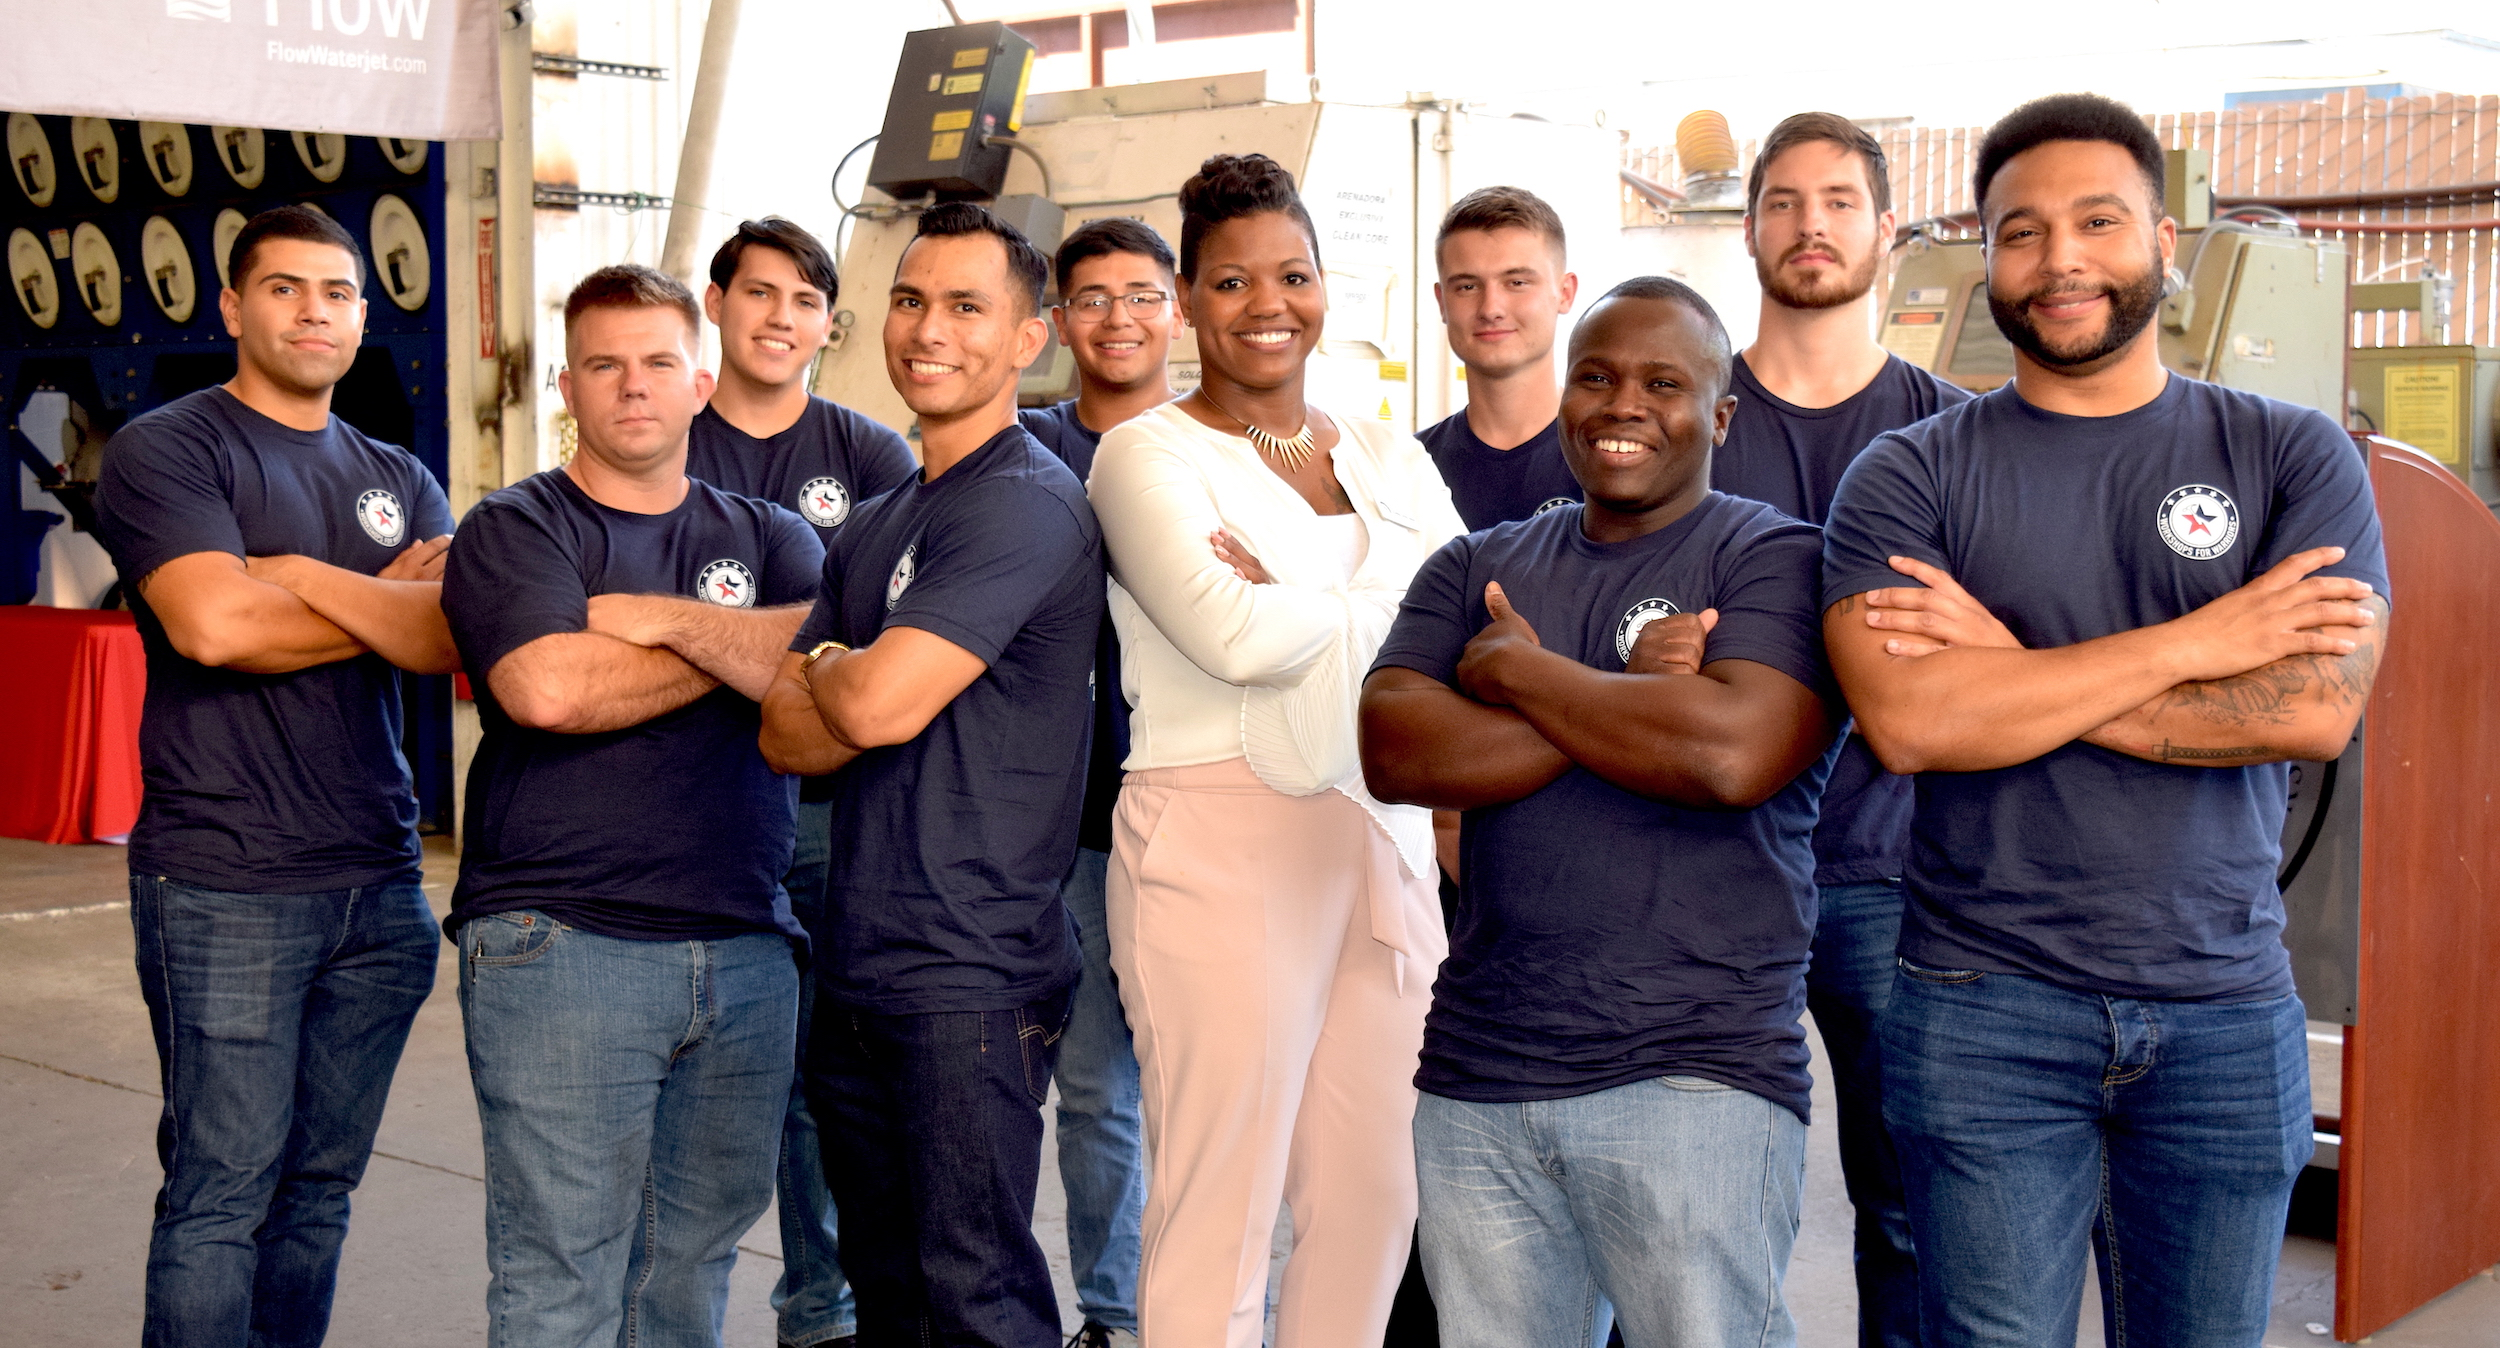 Group of veteran and active duty military students at Workshops for Warriors